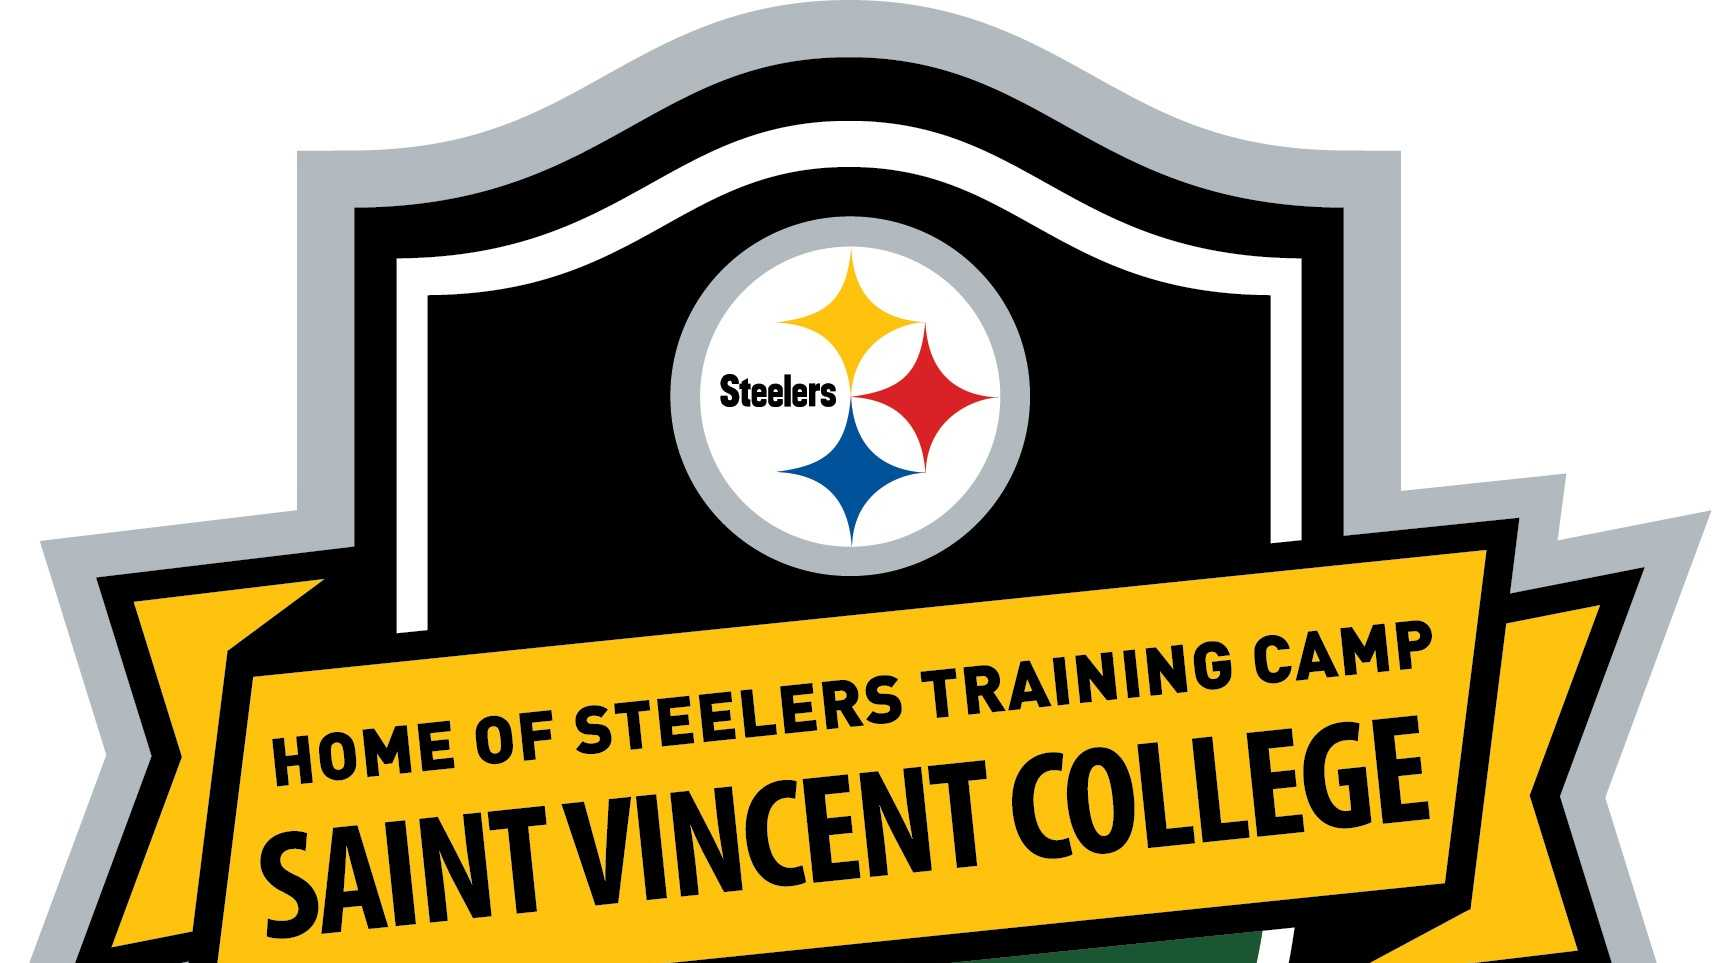 The 2016 Steelers Training Camp logo.